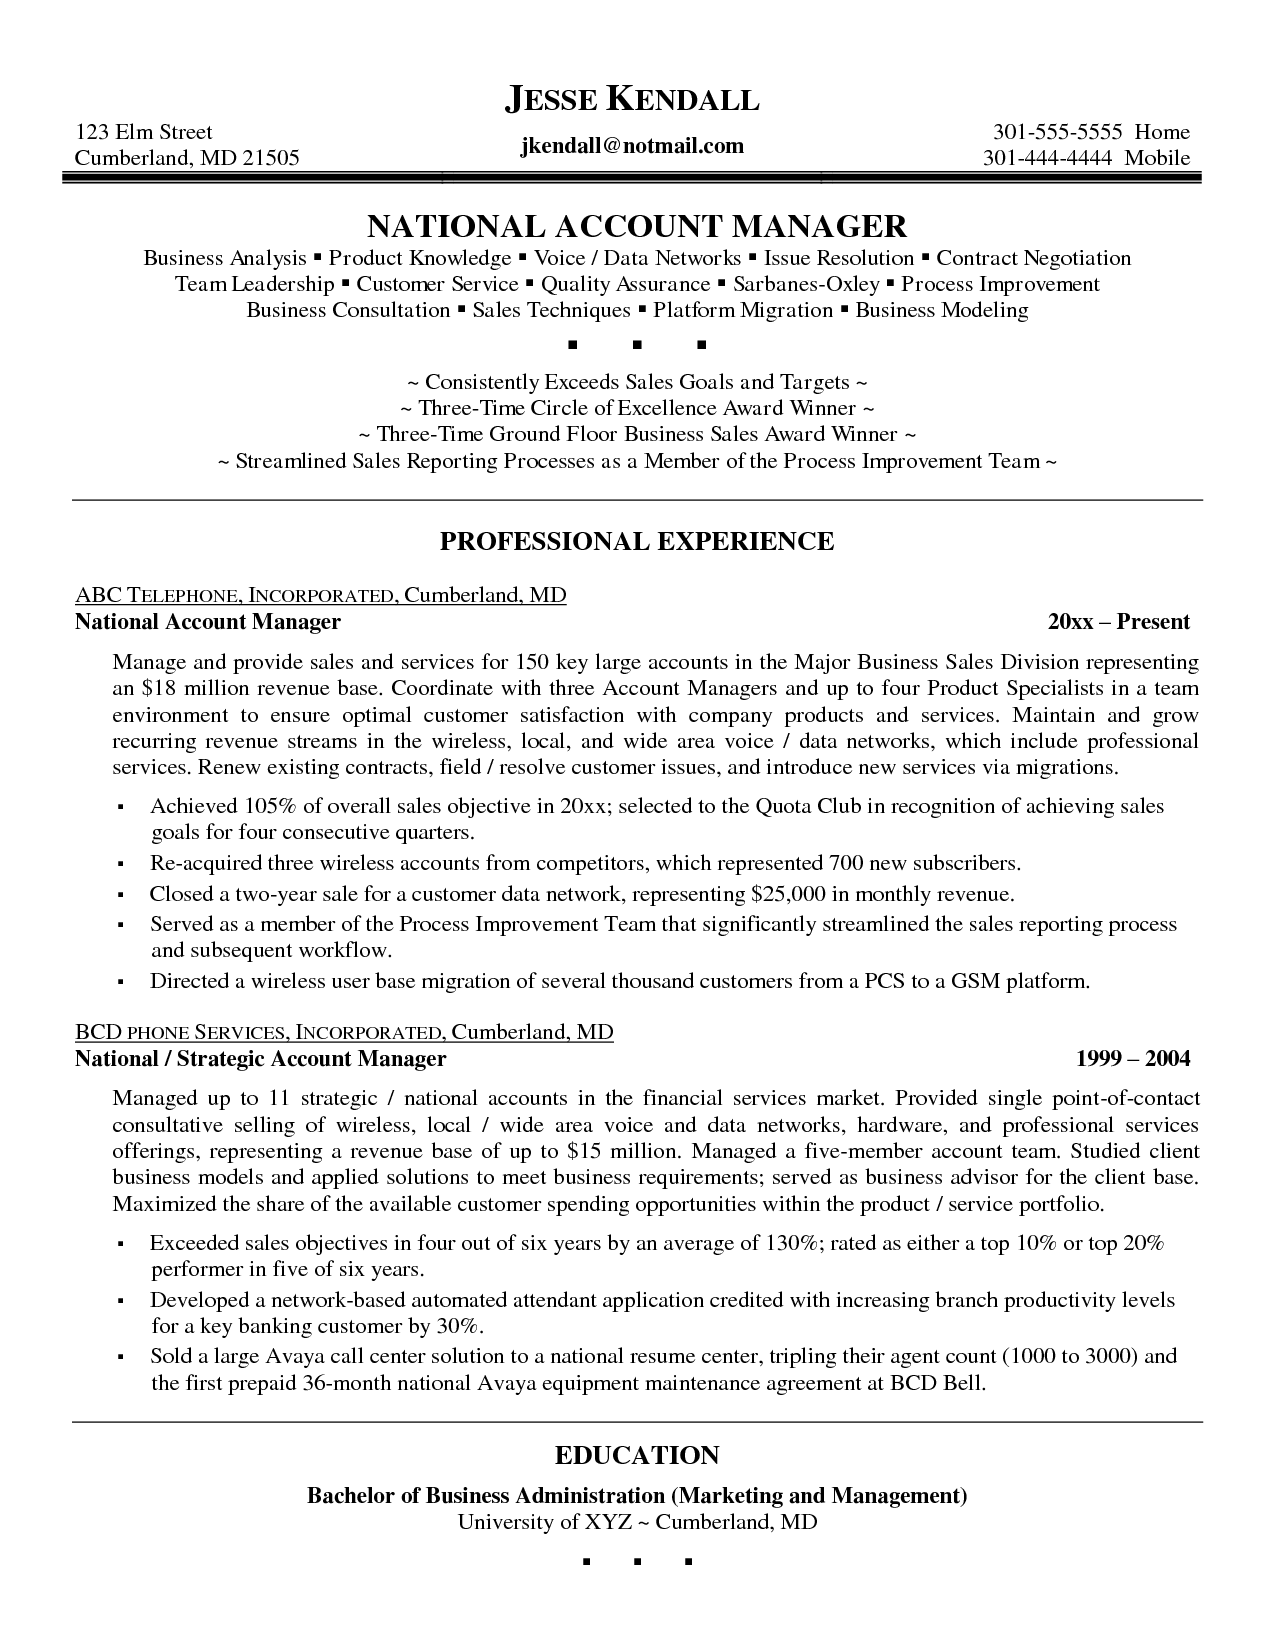 Account Executive Resume Pics Resume Resumes Free Example And Writing Advertising Account